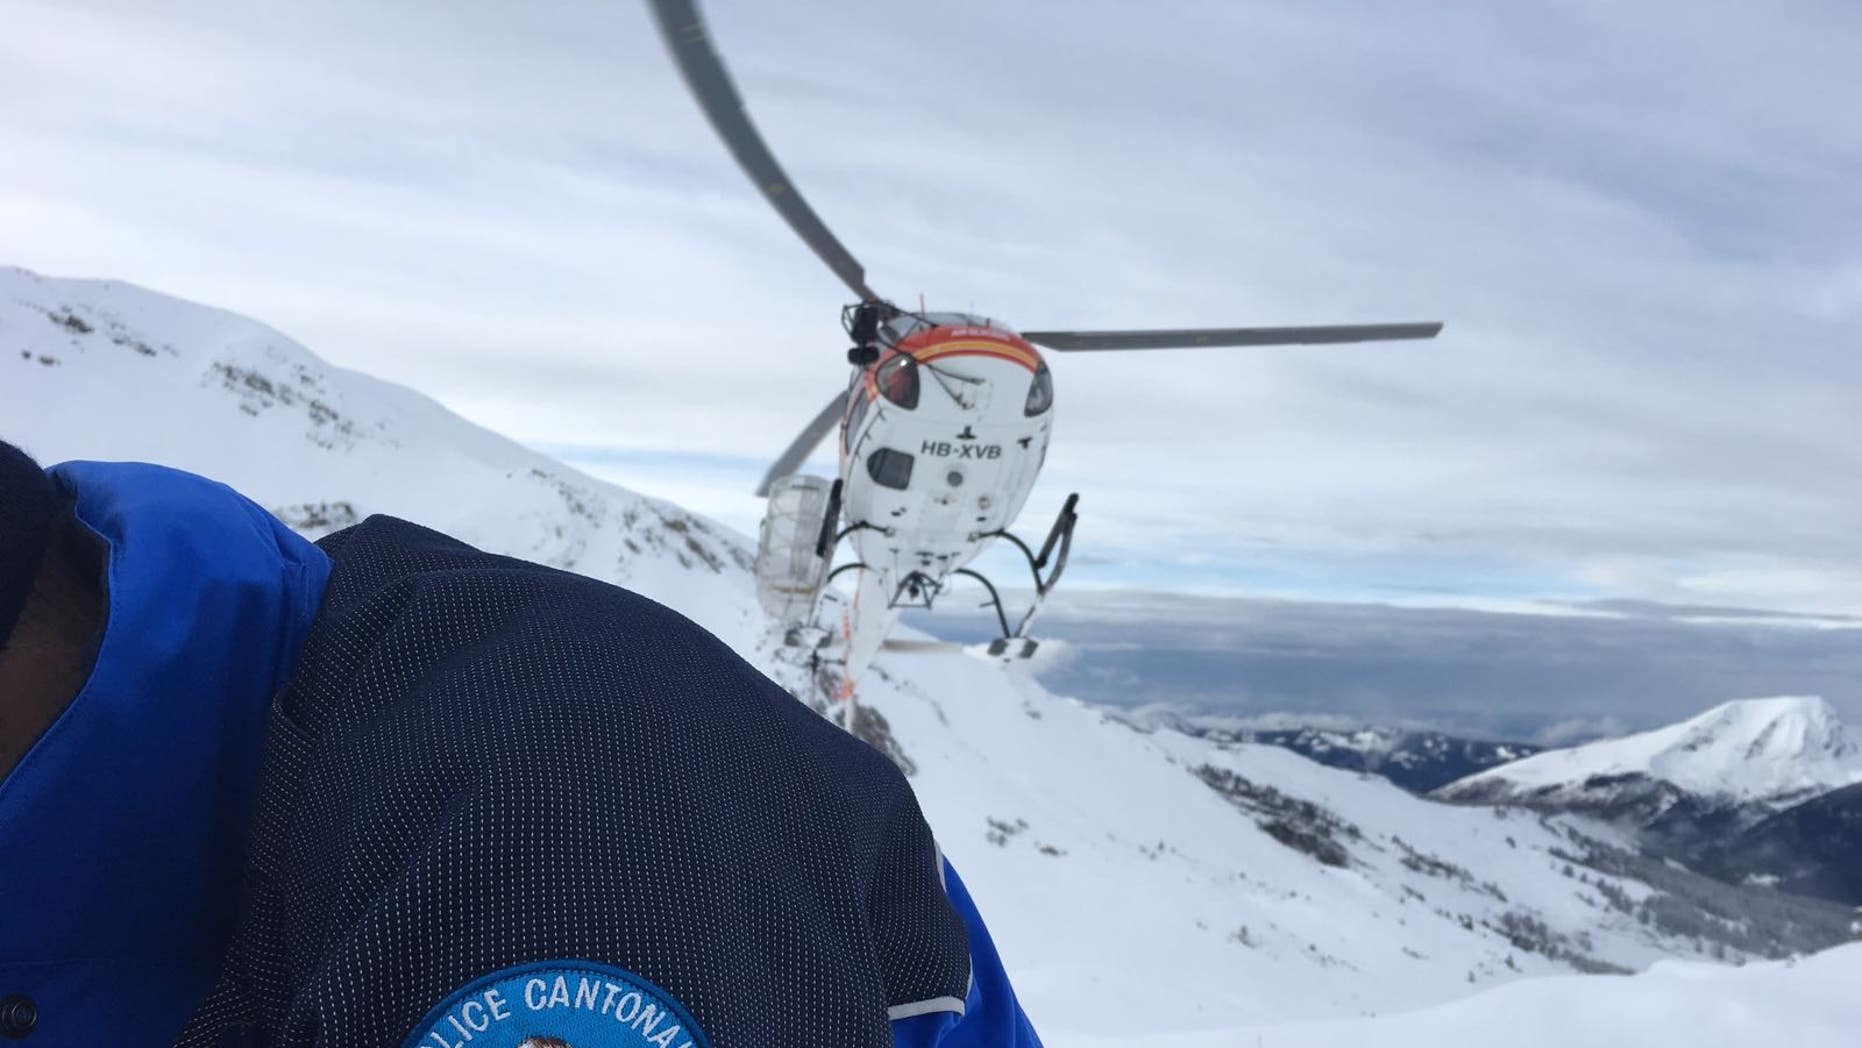 Hikers were reported missing after they were swept away by an avalanche in Switzerland.